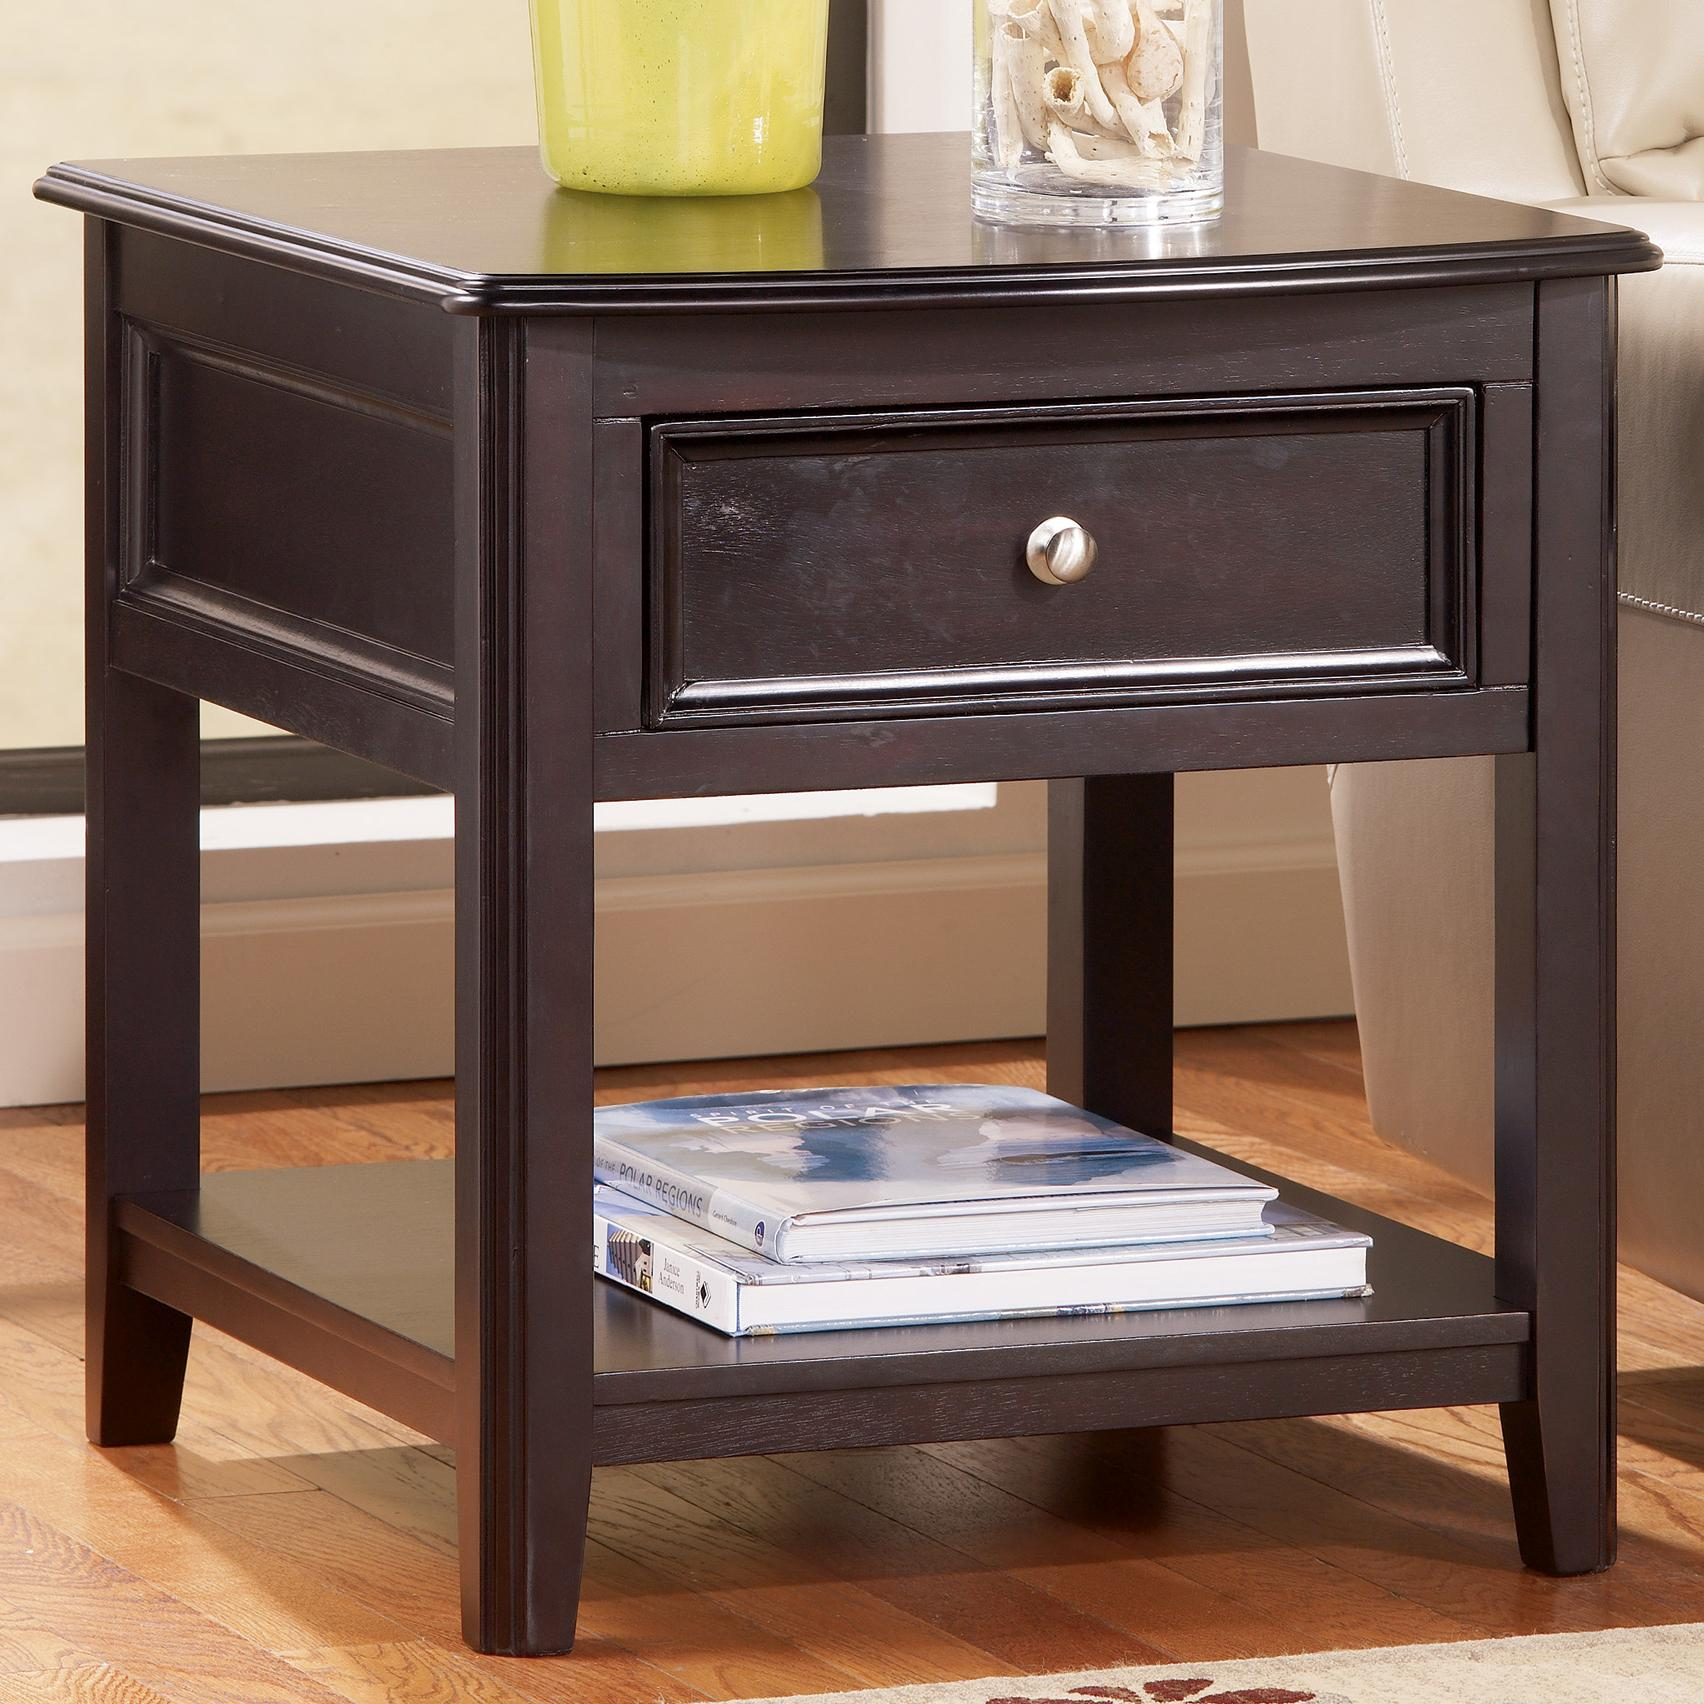 Signature Design by Ashley Carlyle Rectangular End Table - Item Number: T771-3